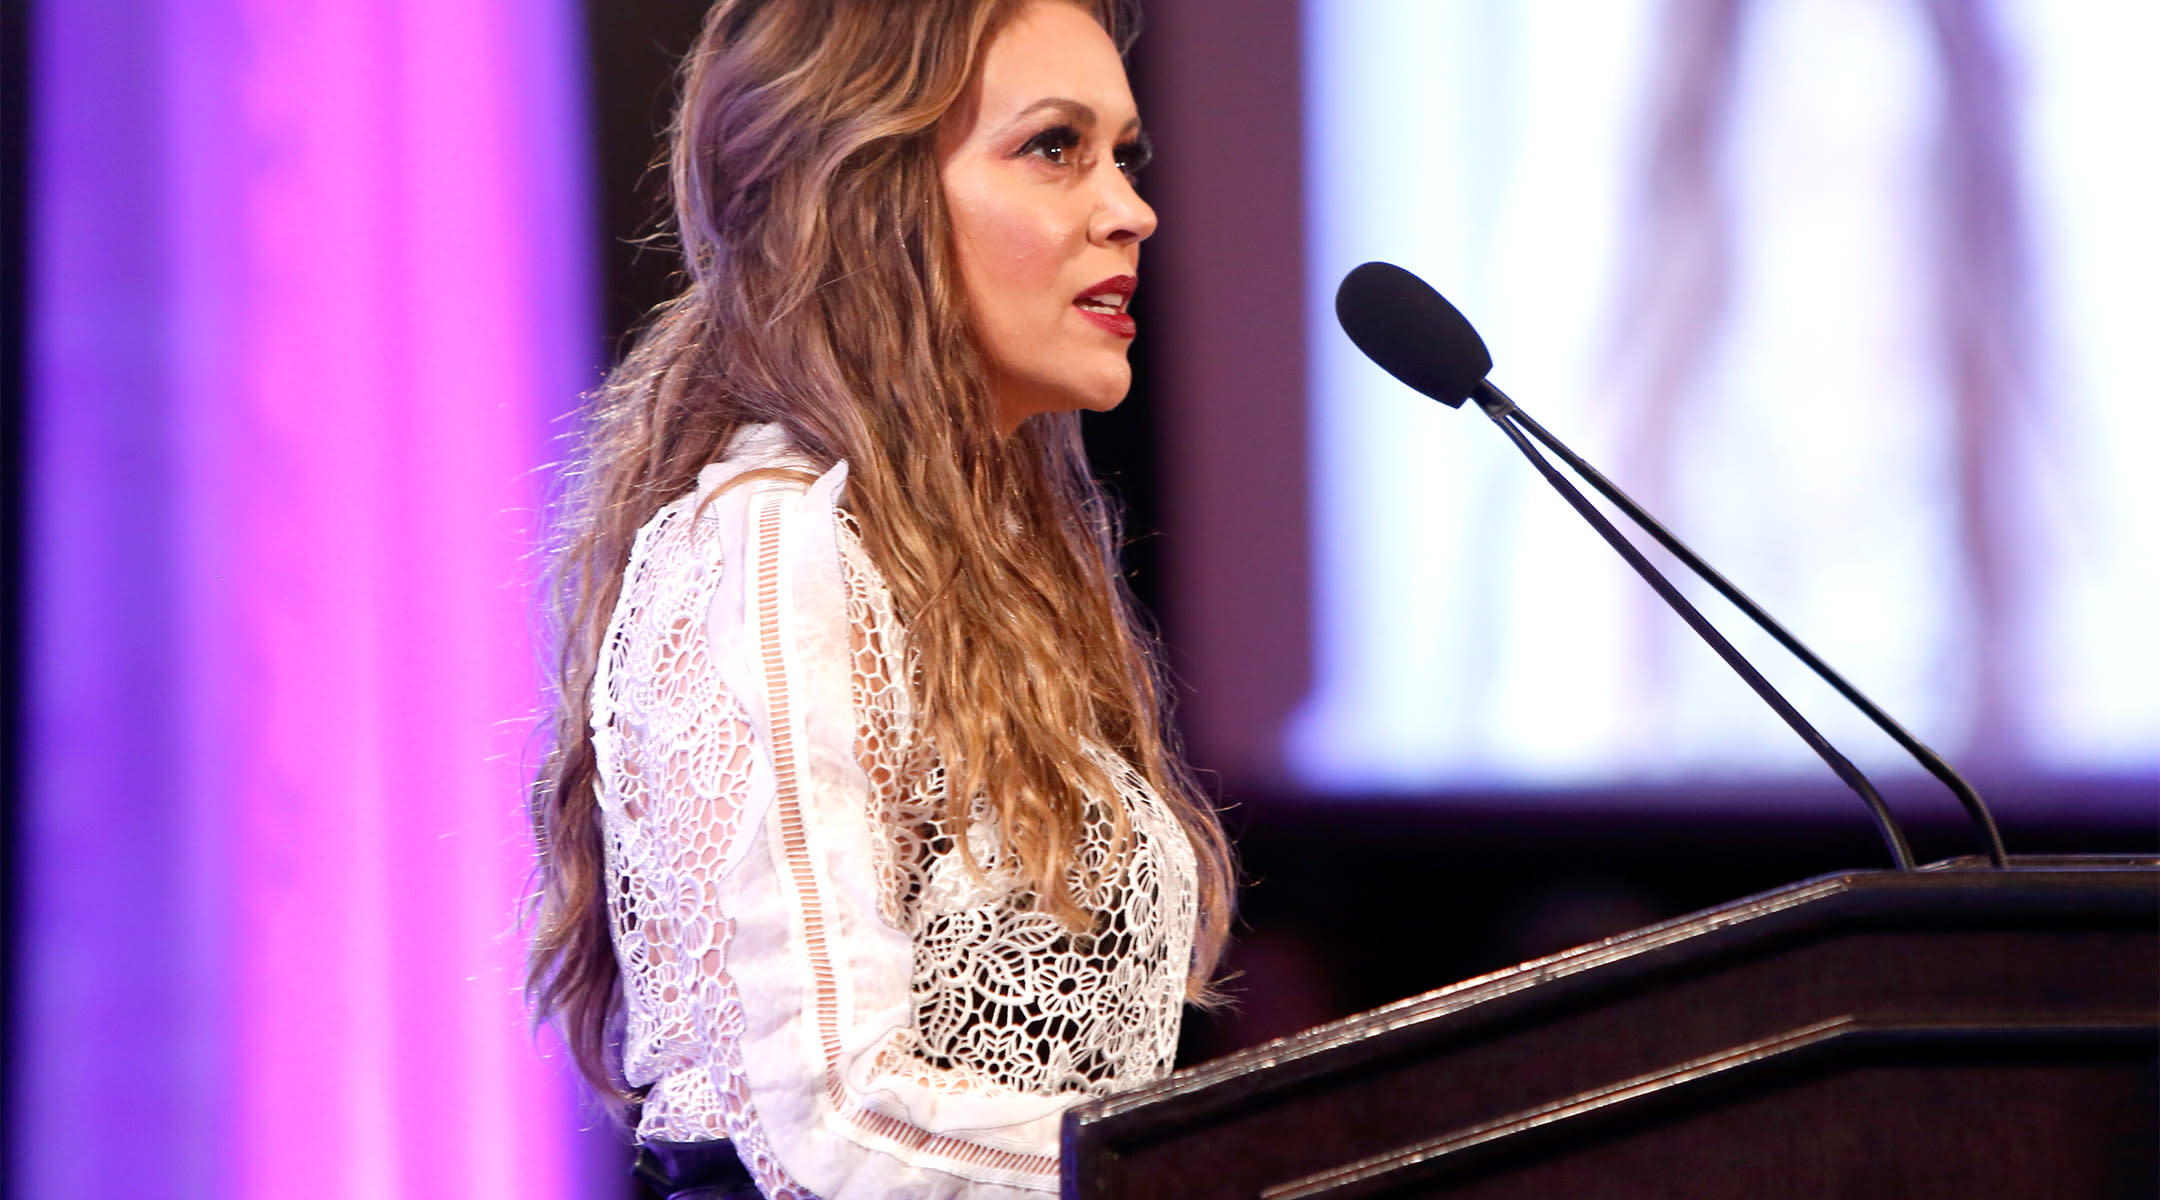 alyssa milano outraged over breastfeeding policy in low income countries